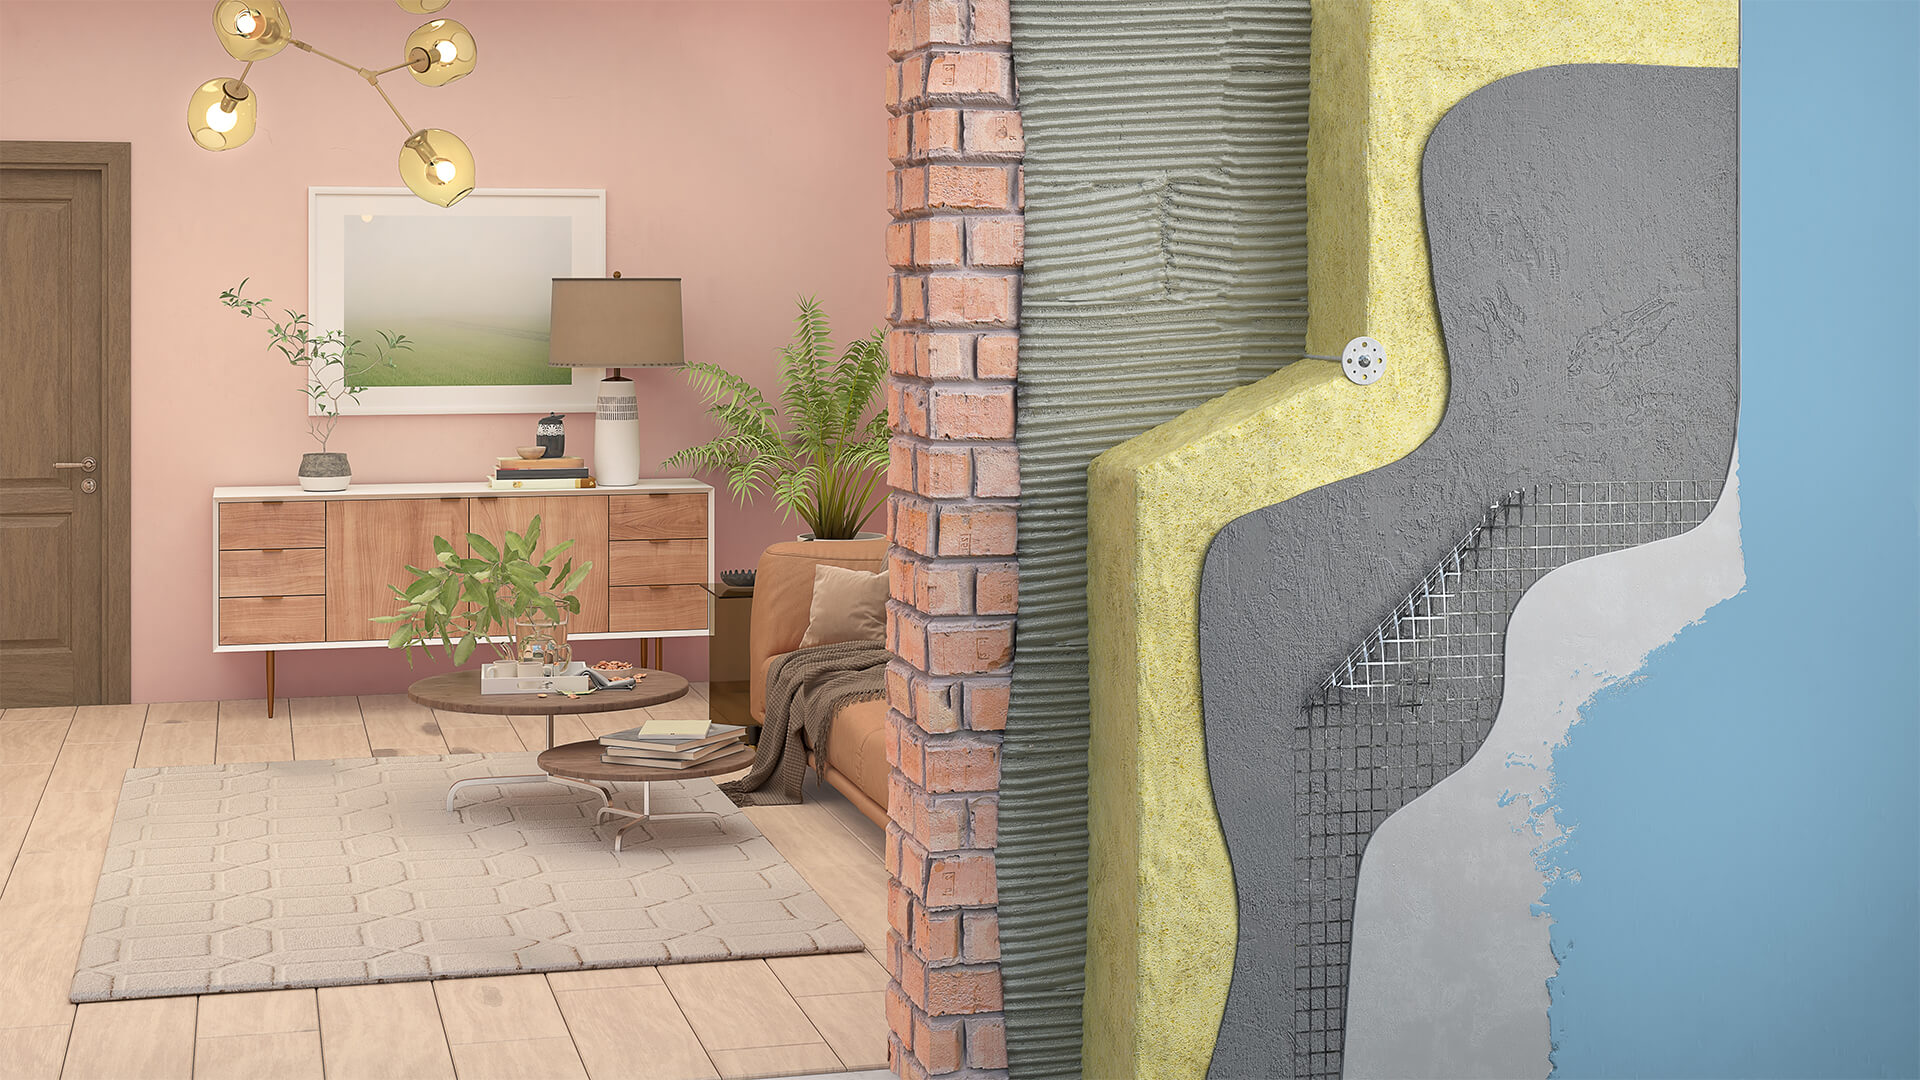 3D render of the wall structure of a house, showing brick, cladding, and insulation layers of a wall, with the wall opening to a living room